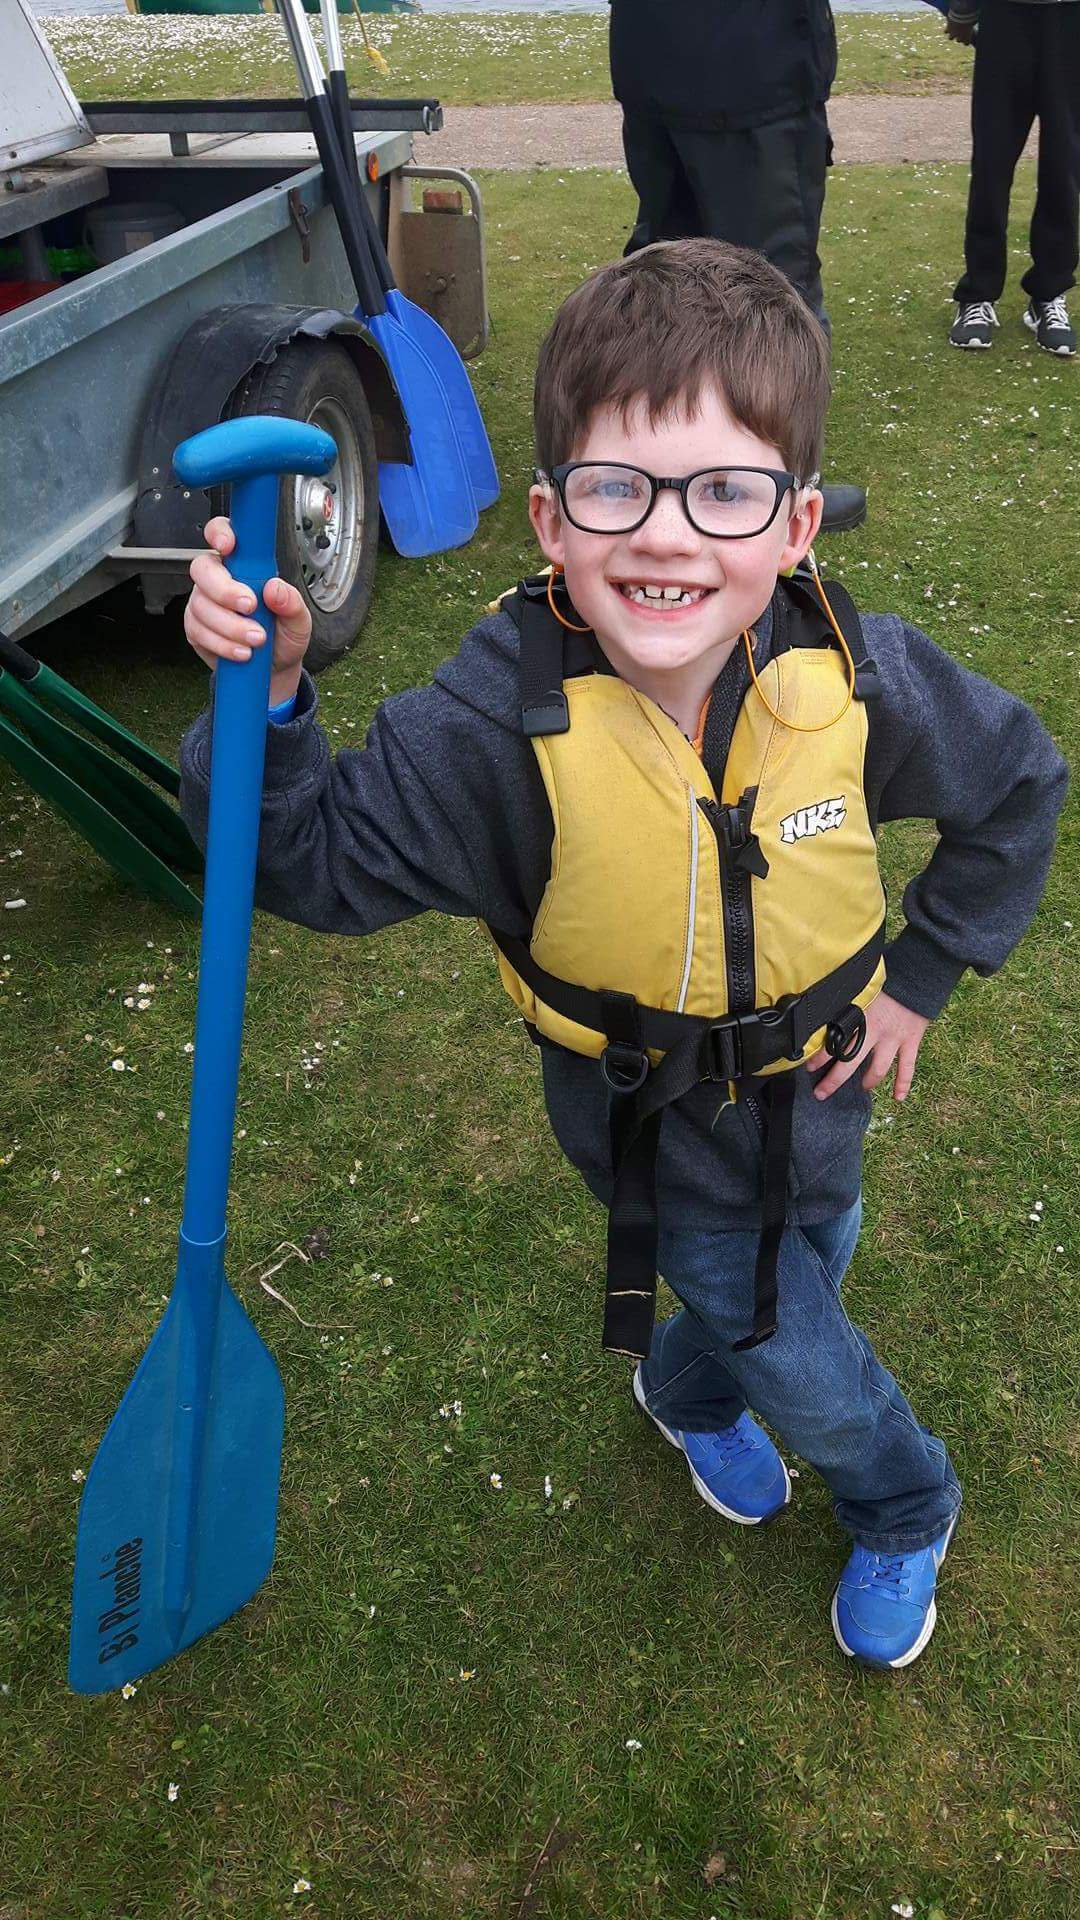 Boy smiling wearing a life jacket